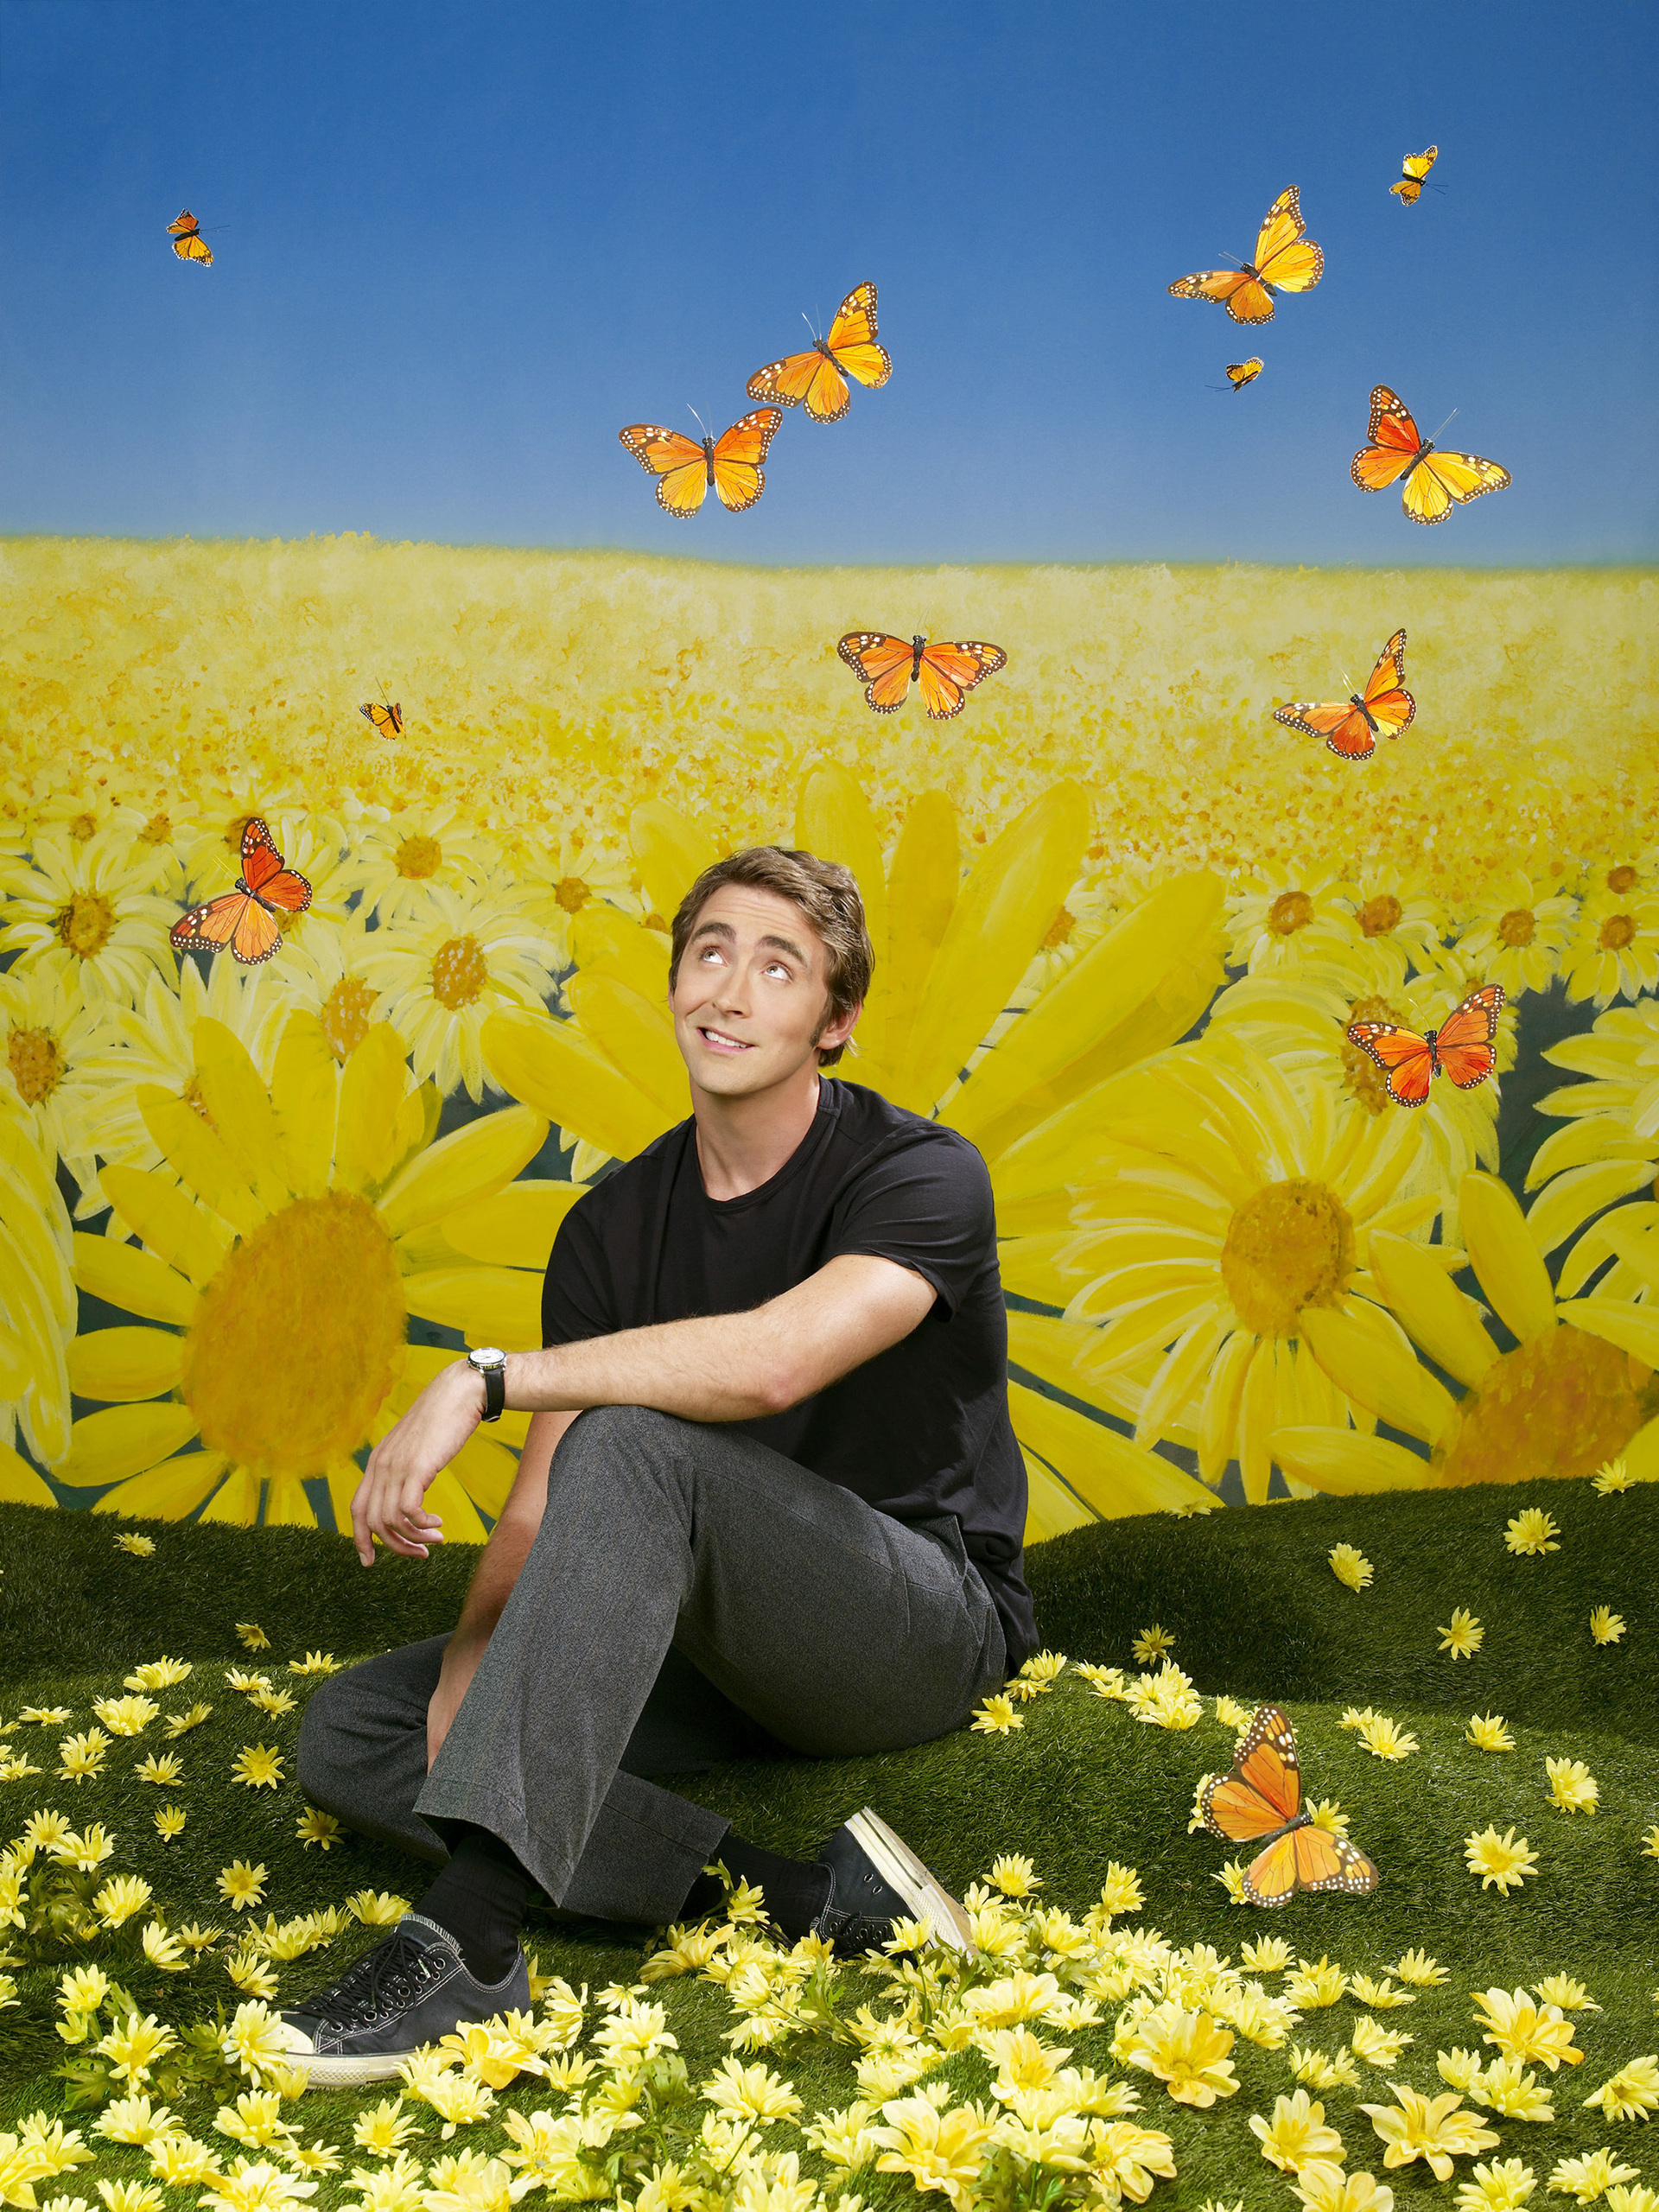 lee pace pushing daisies - photo #30